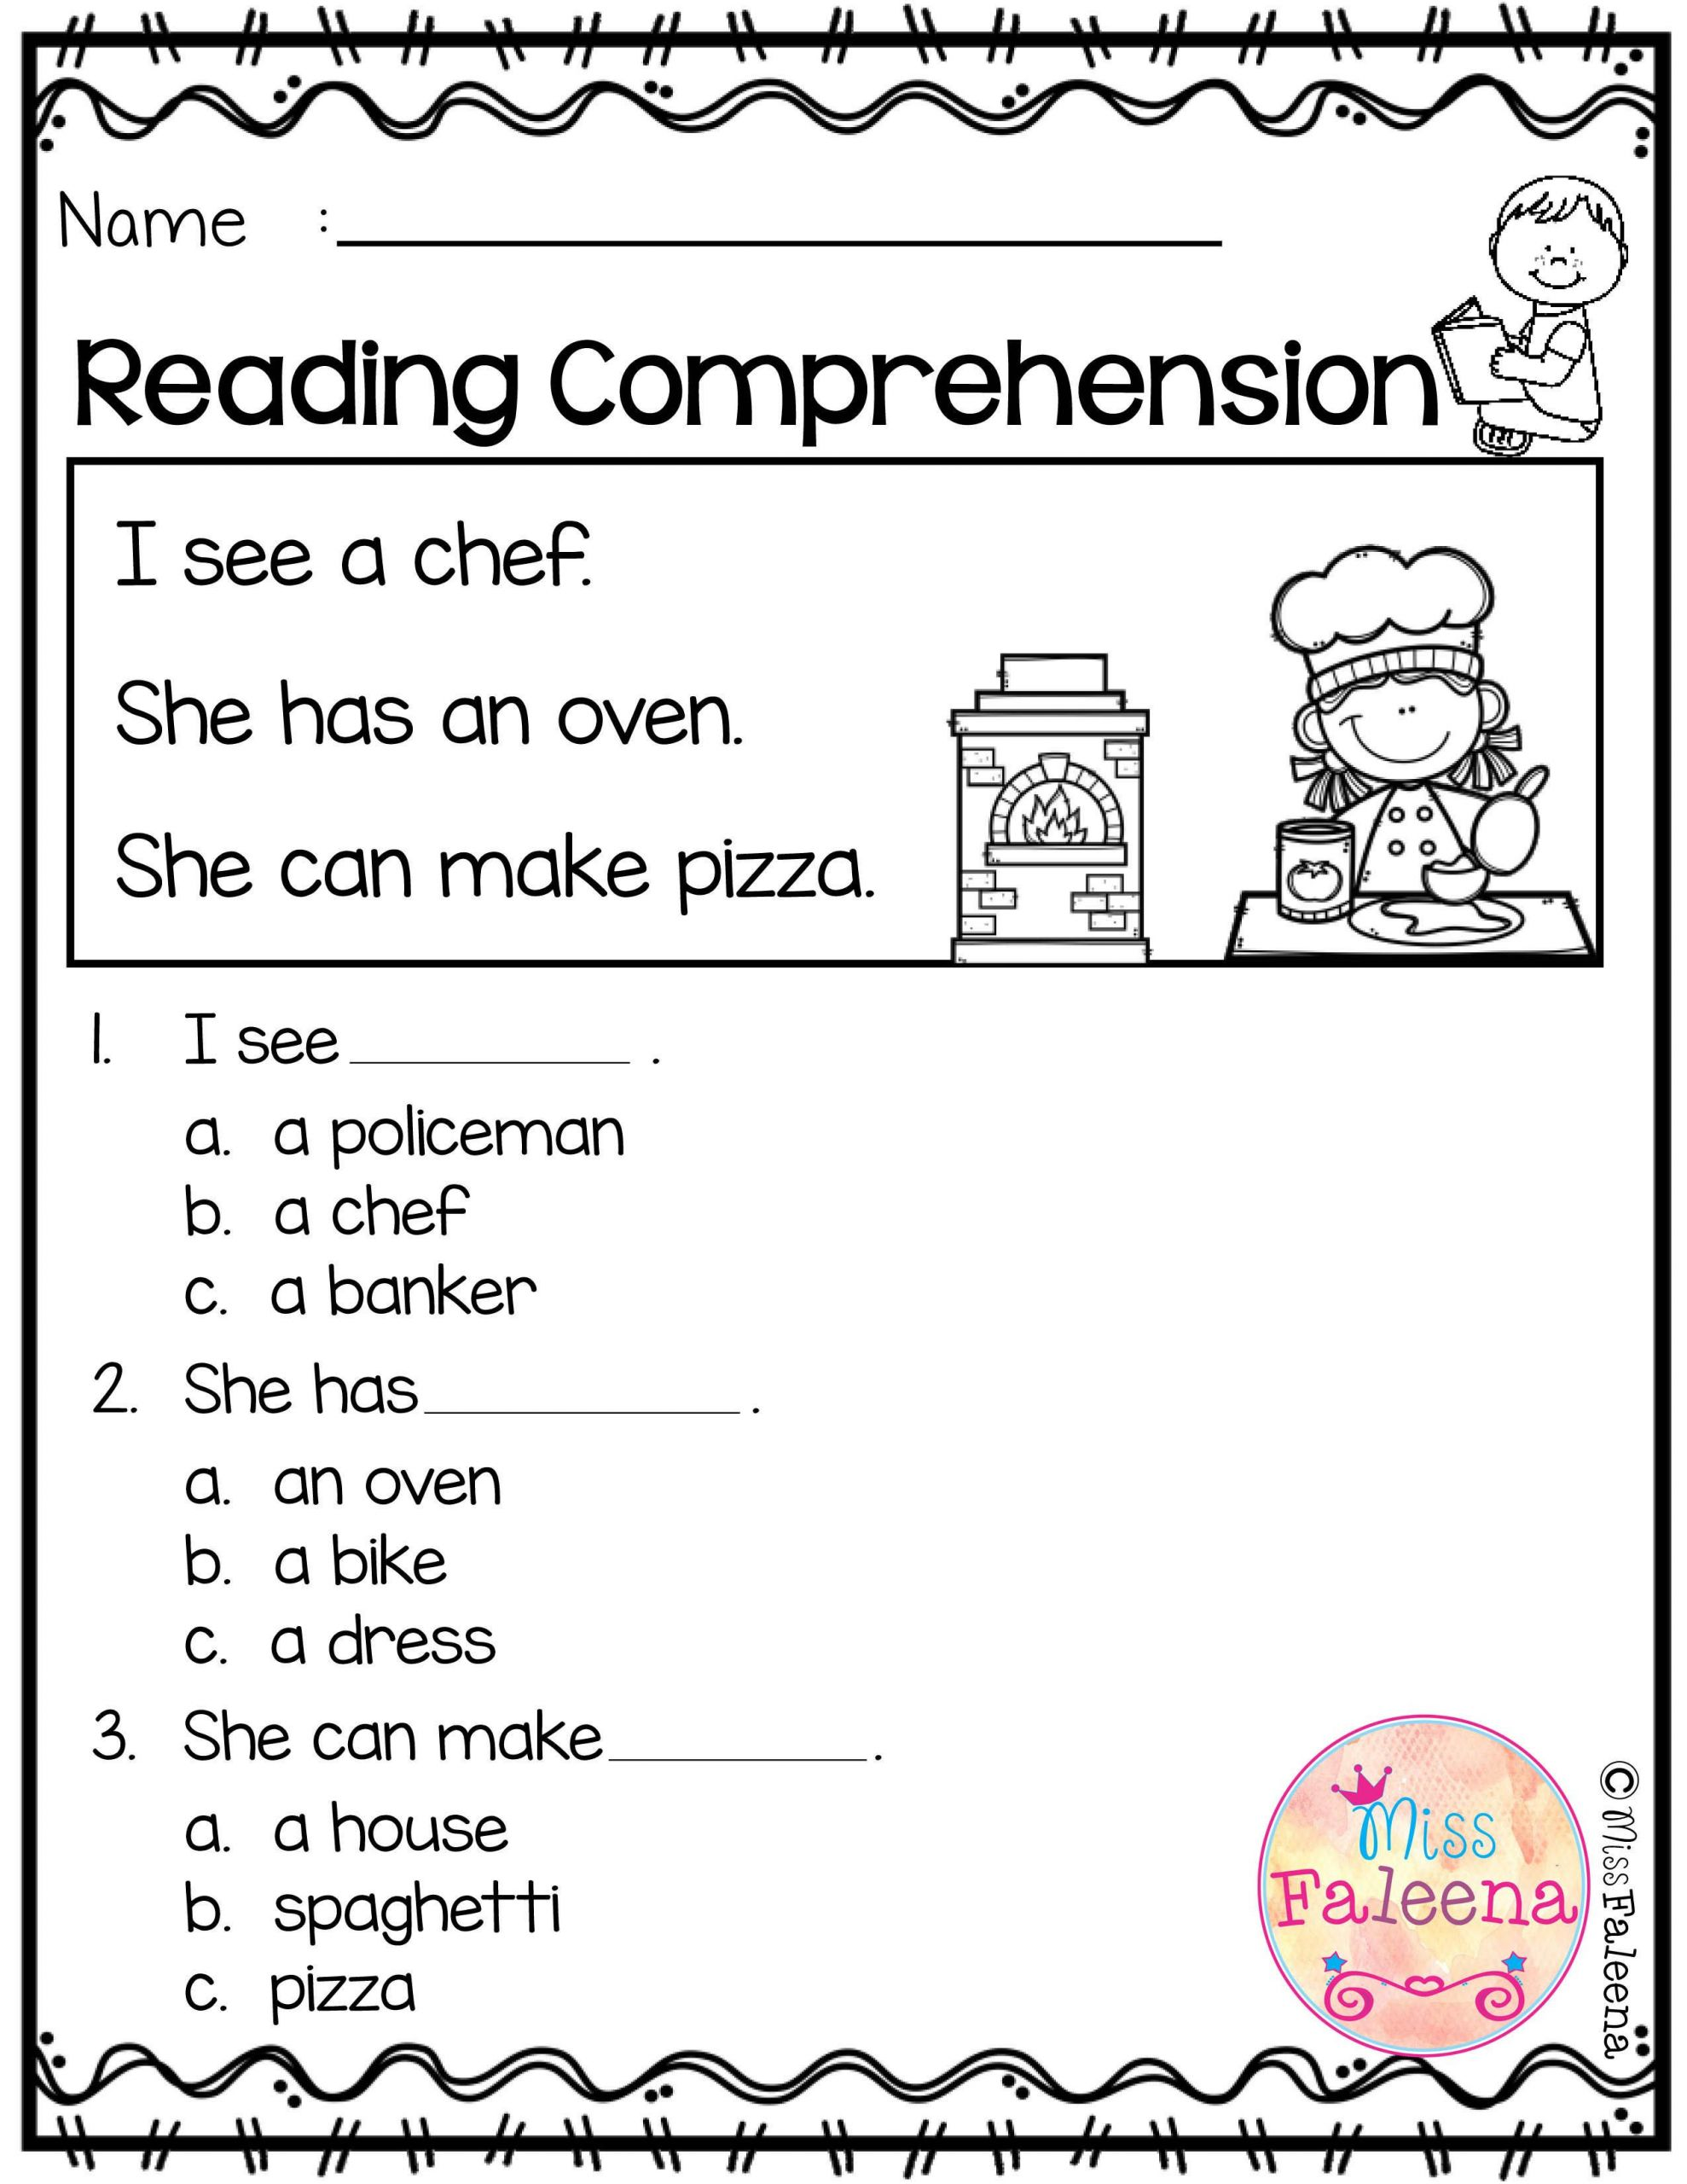 hight resolution of 5 Free Math Worksheets Third Grade 3 Multiplication Multiplication Table  2to10 - apocalomegaproductions.com